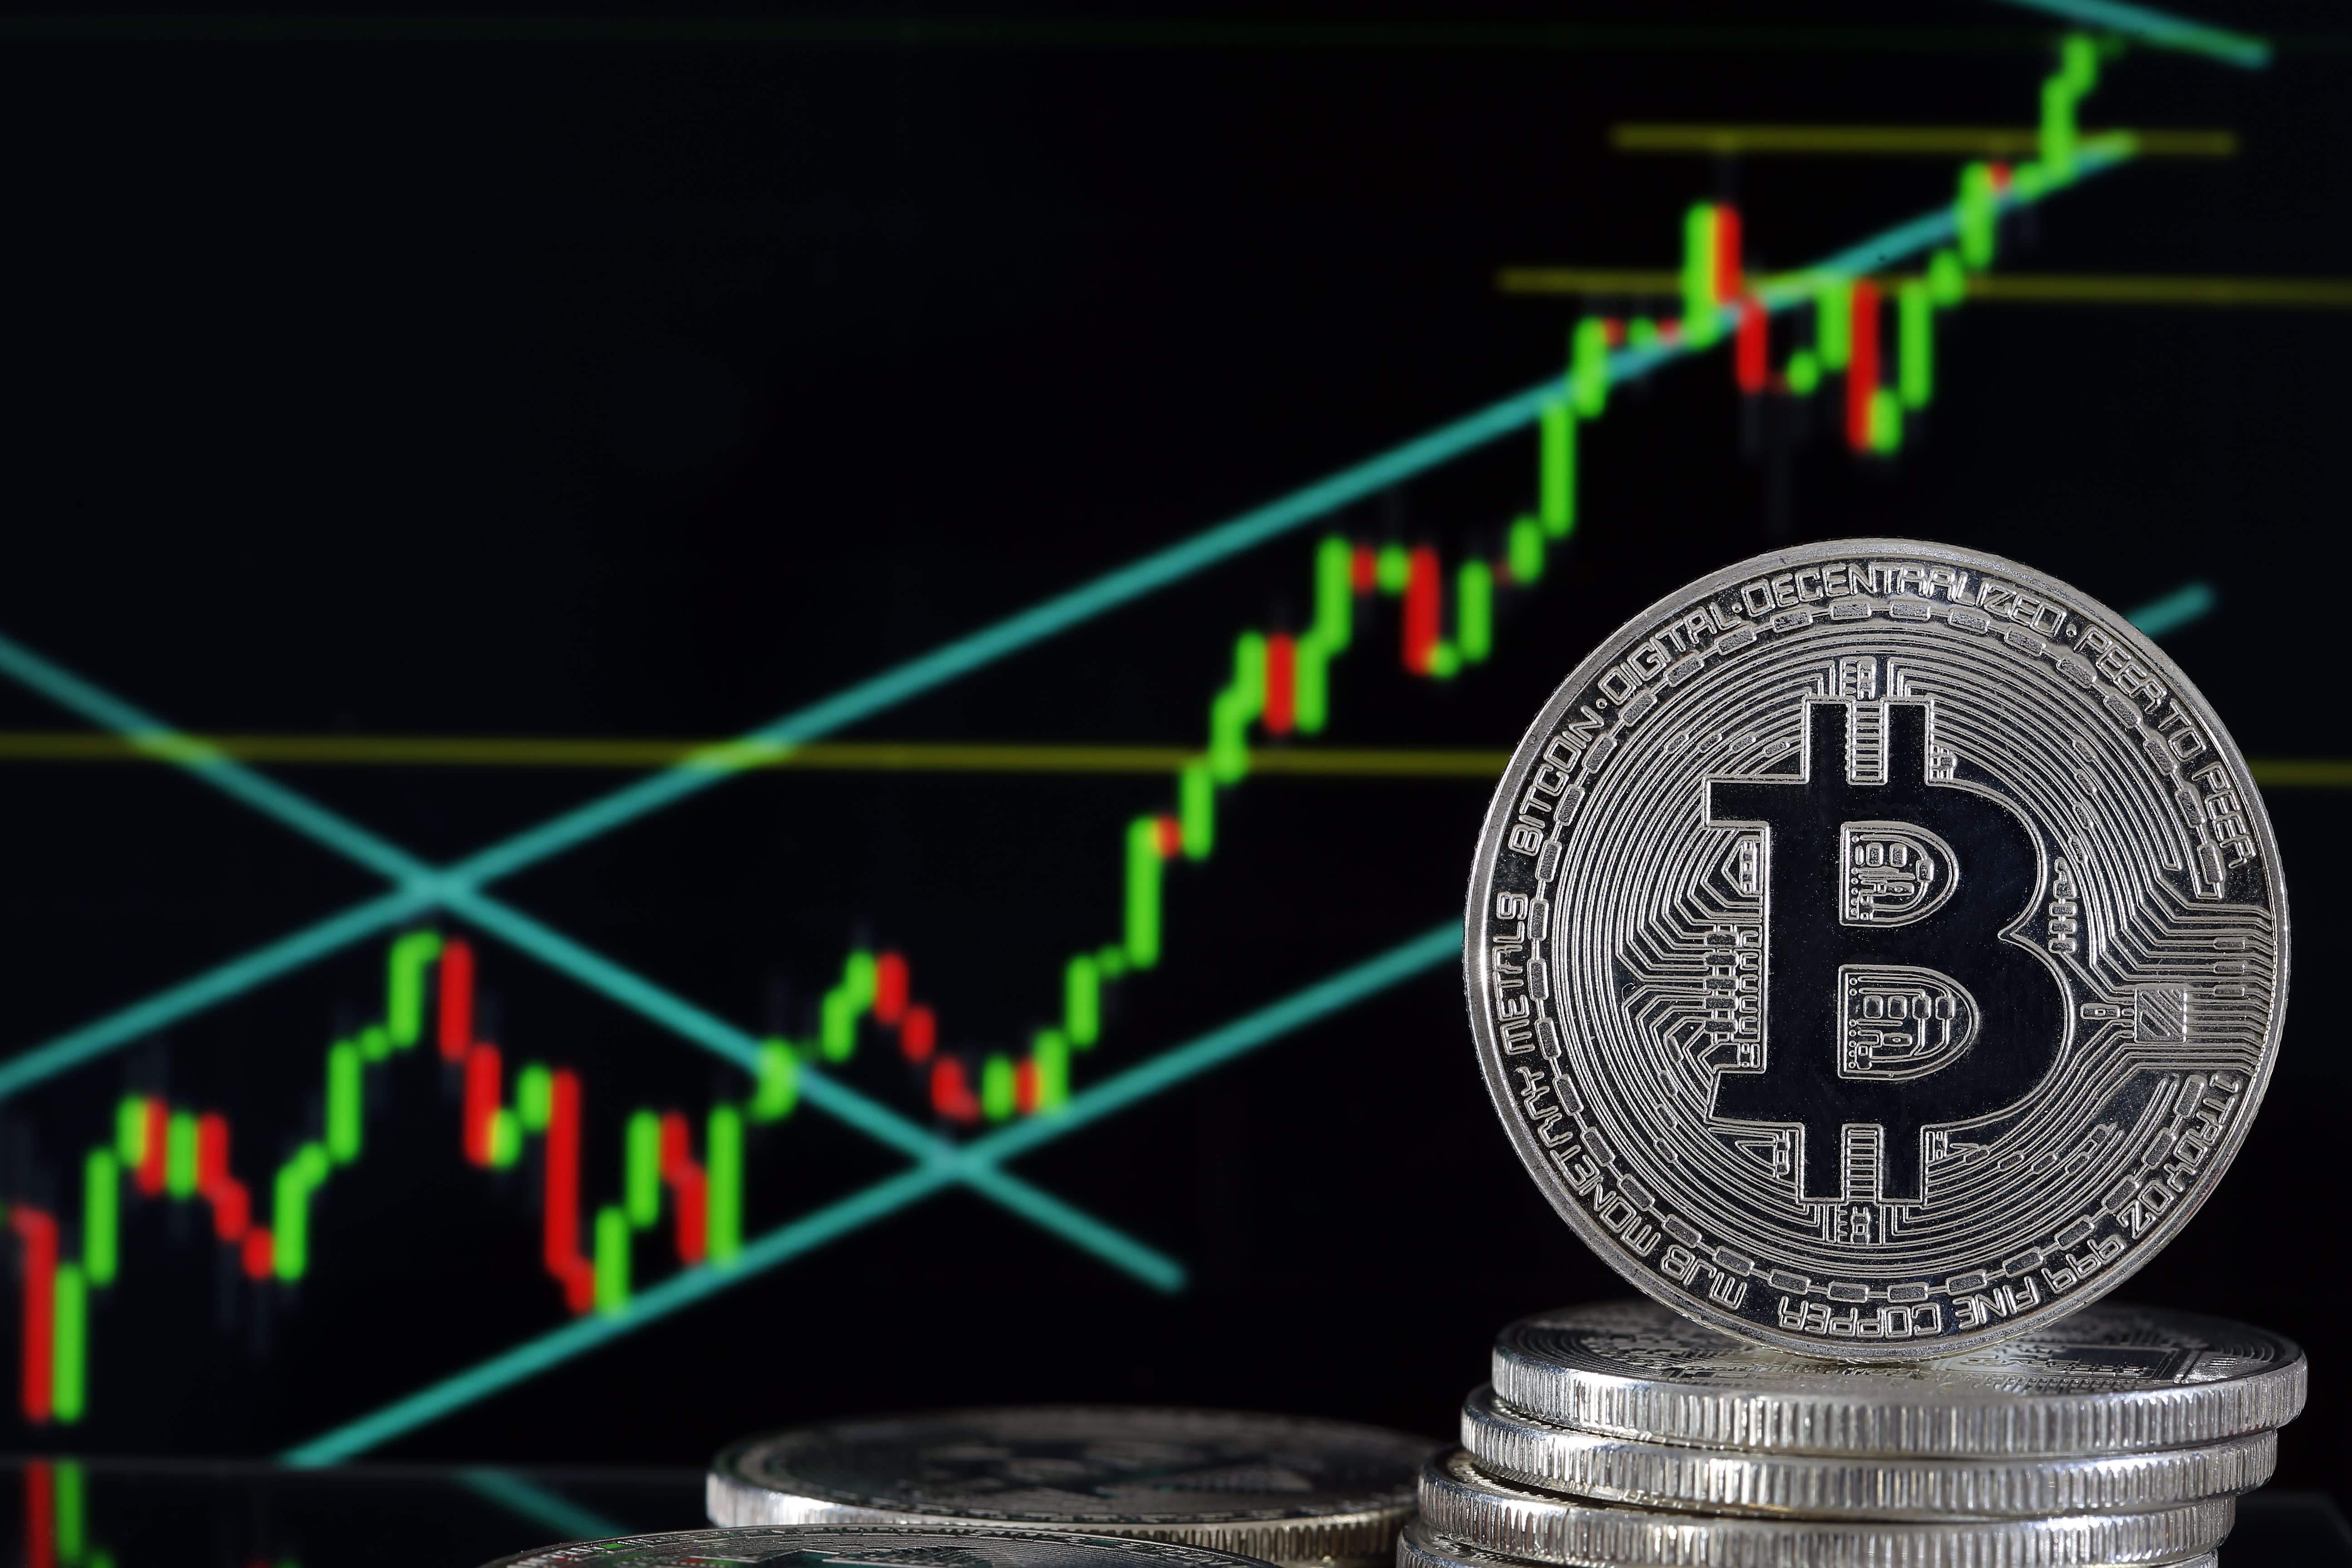 Attention bitcoin investors: Top strategist sees a troubling trend amid record market inflows - CNBC